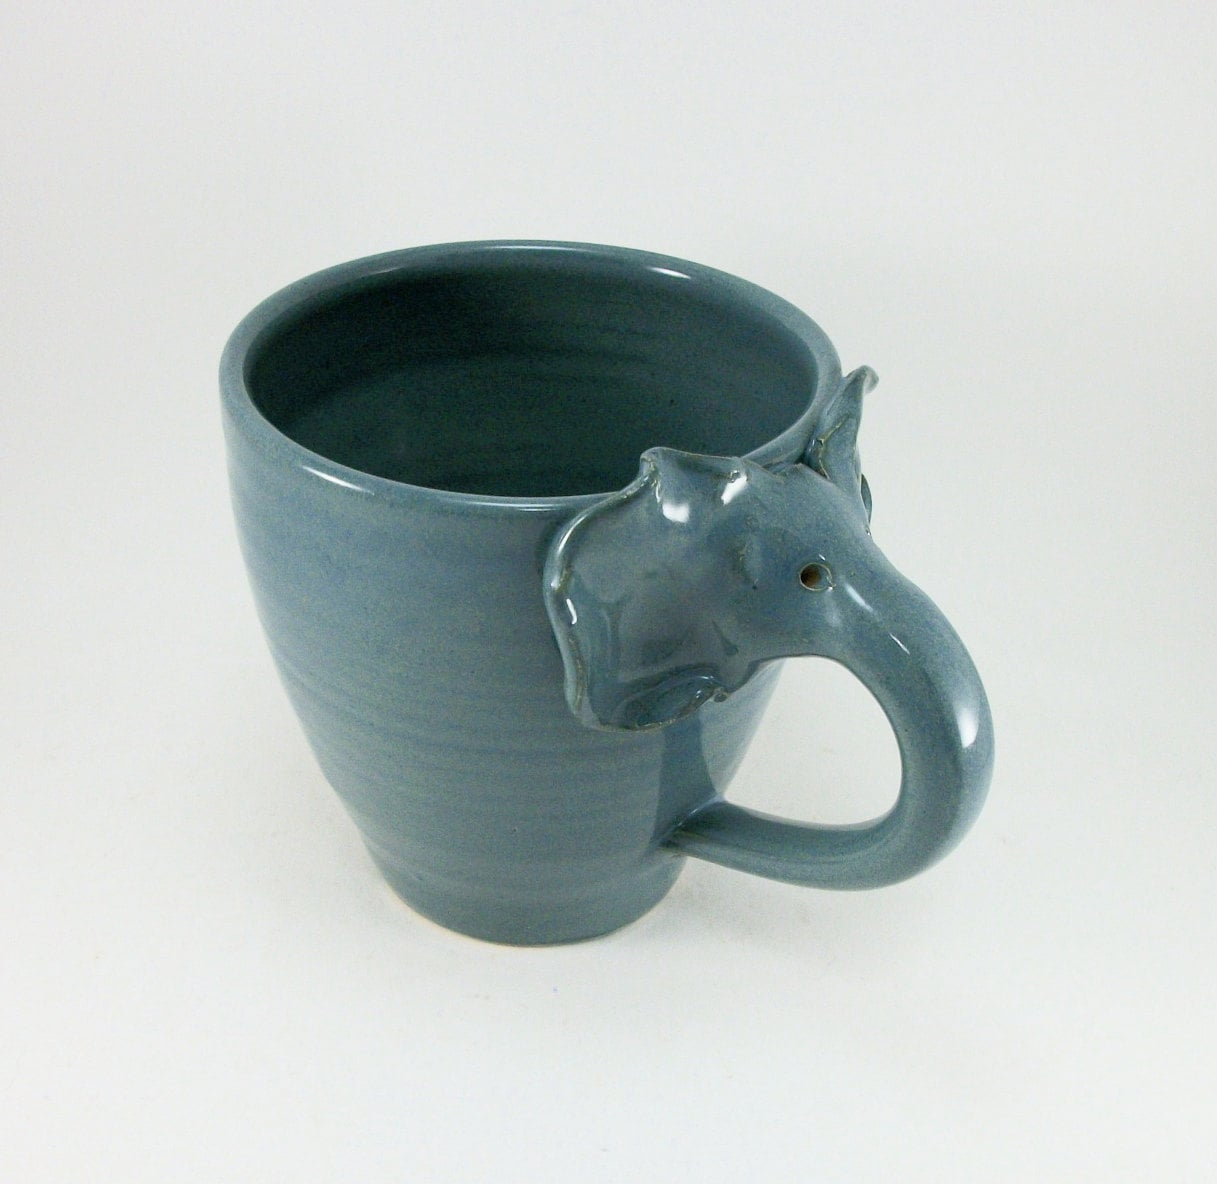 another elephant mug